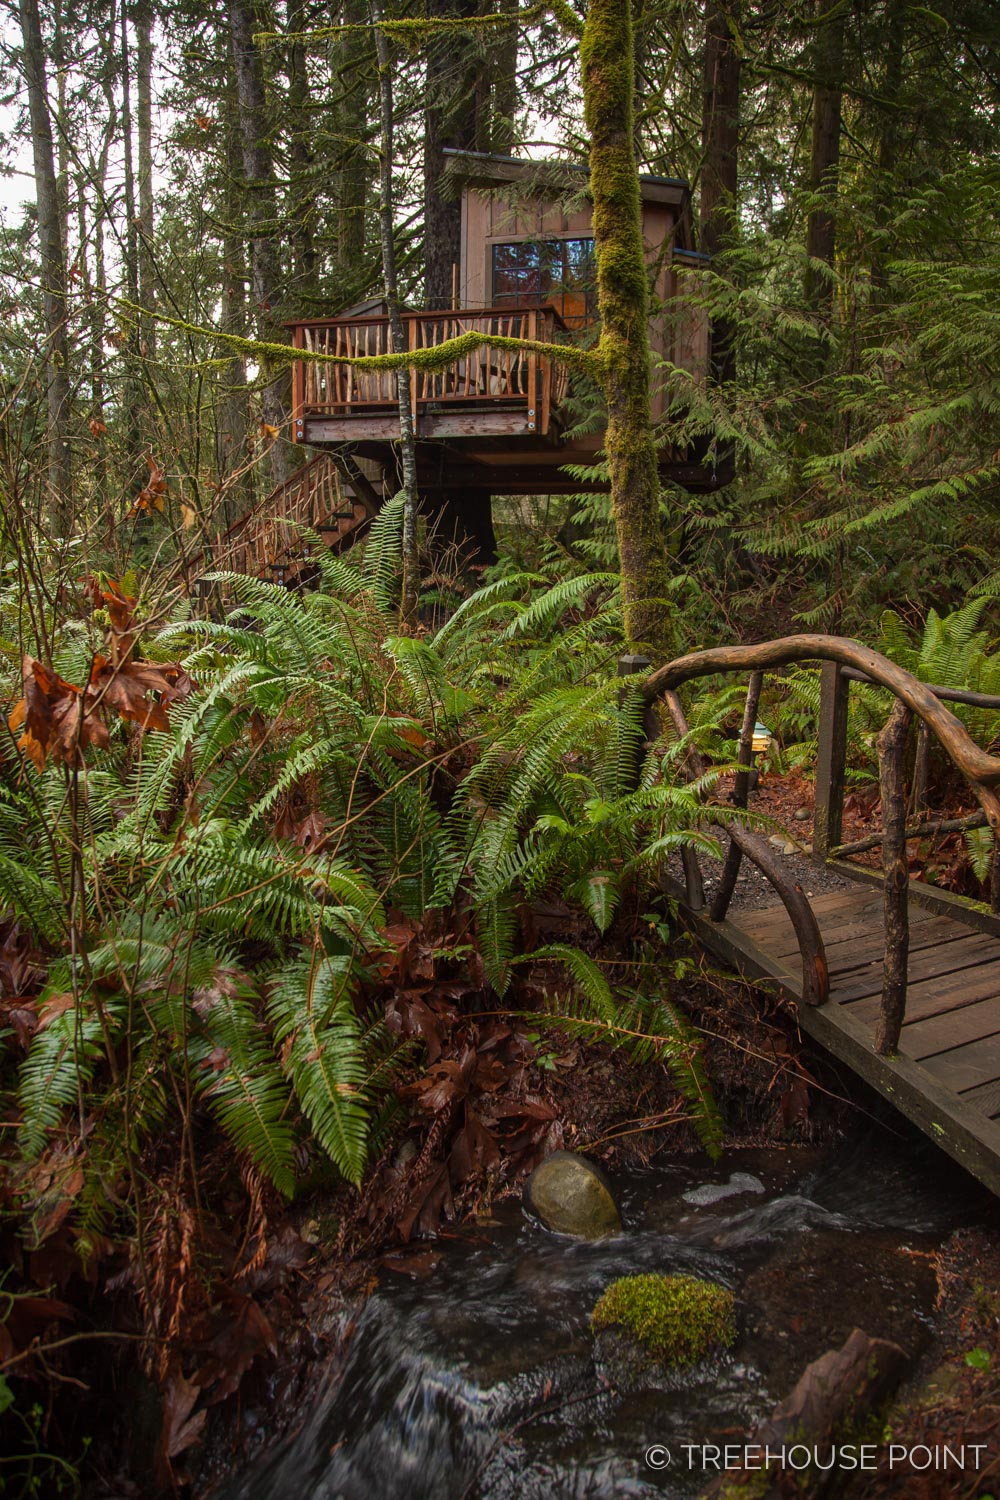 Nest_TreeHouse_Point_2018-32.jpg